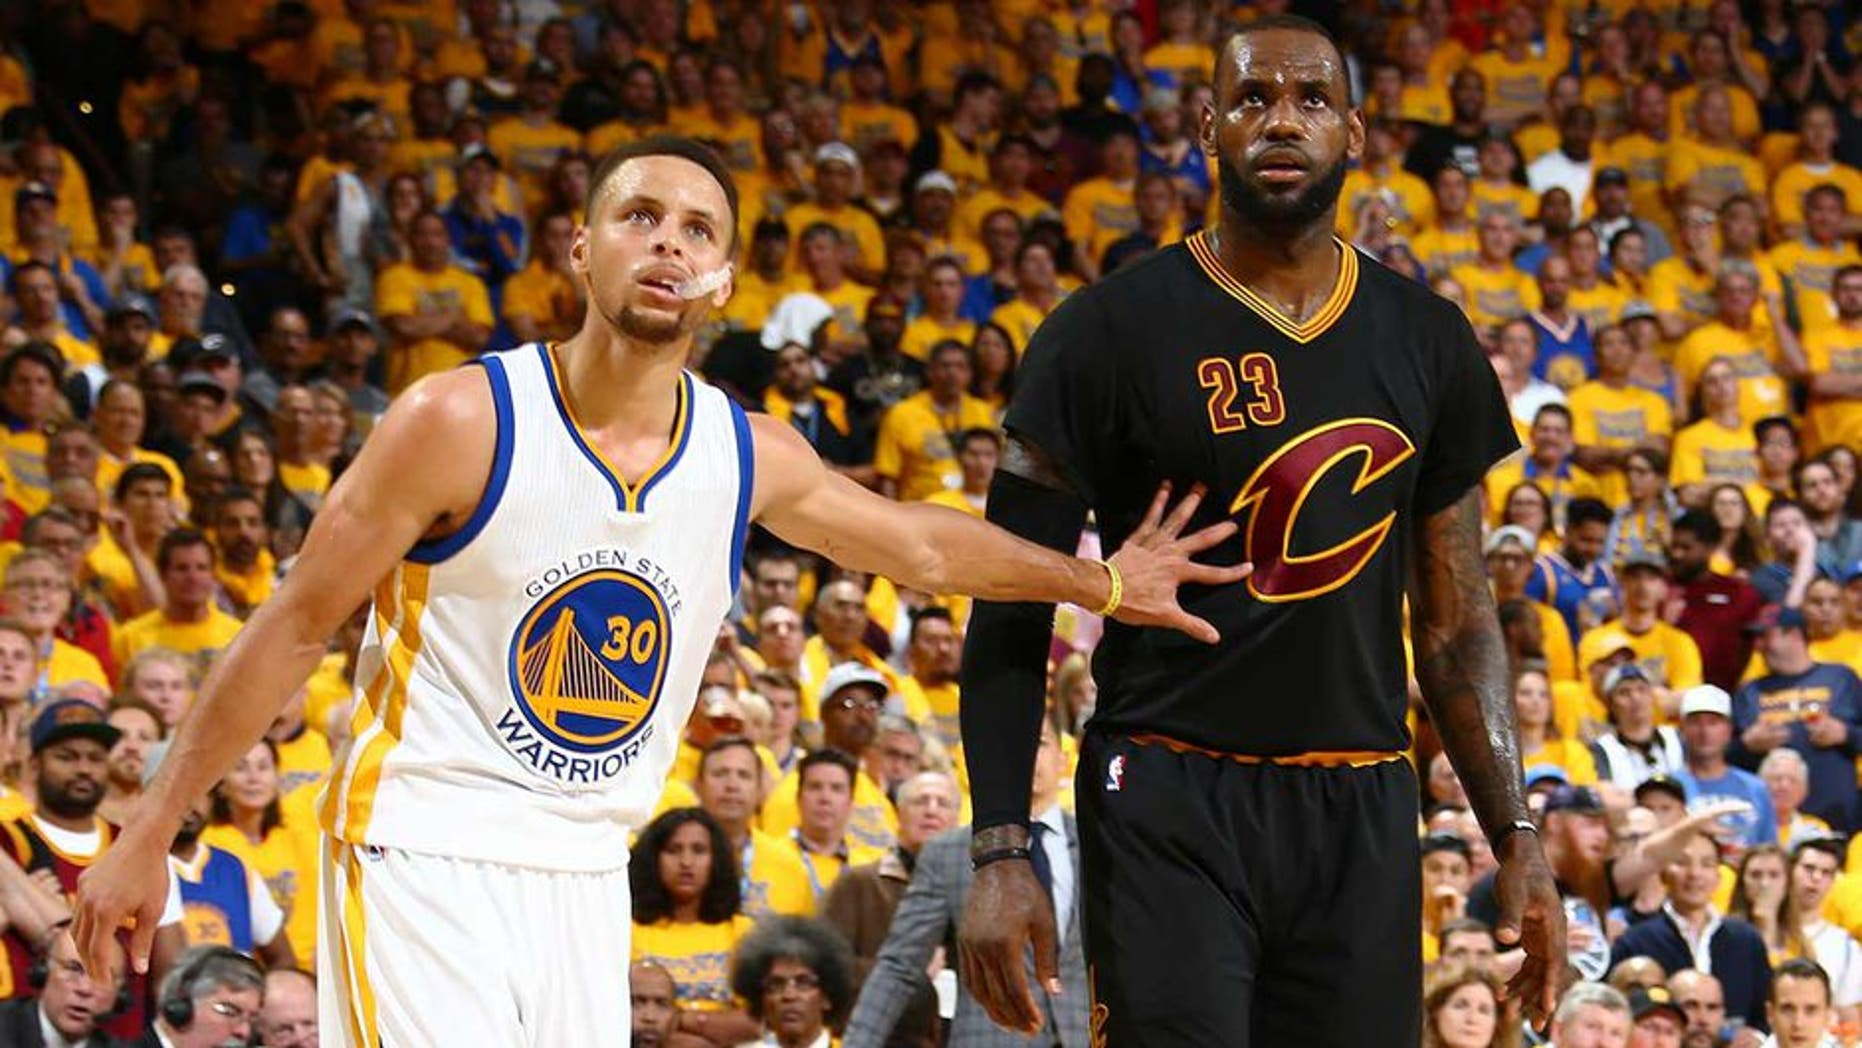 OAKLAND, CA - JUNE 19: Stephen Curry #30 of the Golden State Warriors and LeBron James #23 of the Cleveland Cavaliers during the game in Game Seven of the 2016 NBA Finals on June 19, 2016 at Oracle Arena in Oakland, California. NOTE TO USER: User expressly acknowledges and agrees that, by downloading and or using this photograph, user is consenting to the terms and conditions of Getty Images License Agreement. Mandatory Copyright Notice: Copyright 2016 NBAE (Photo by Nathaniel S. Butler/NBAE via Getty Images)